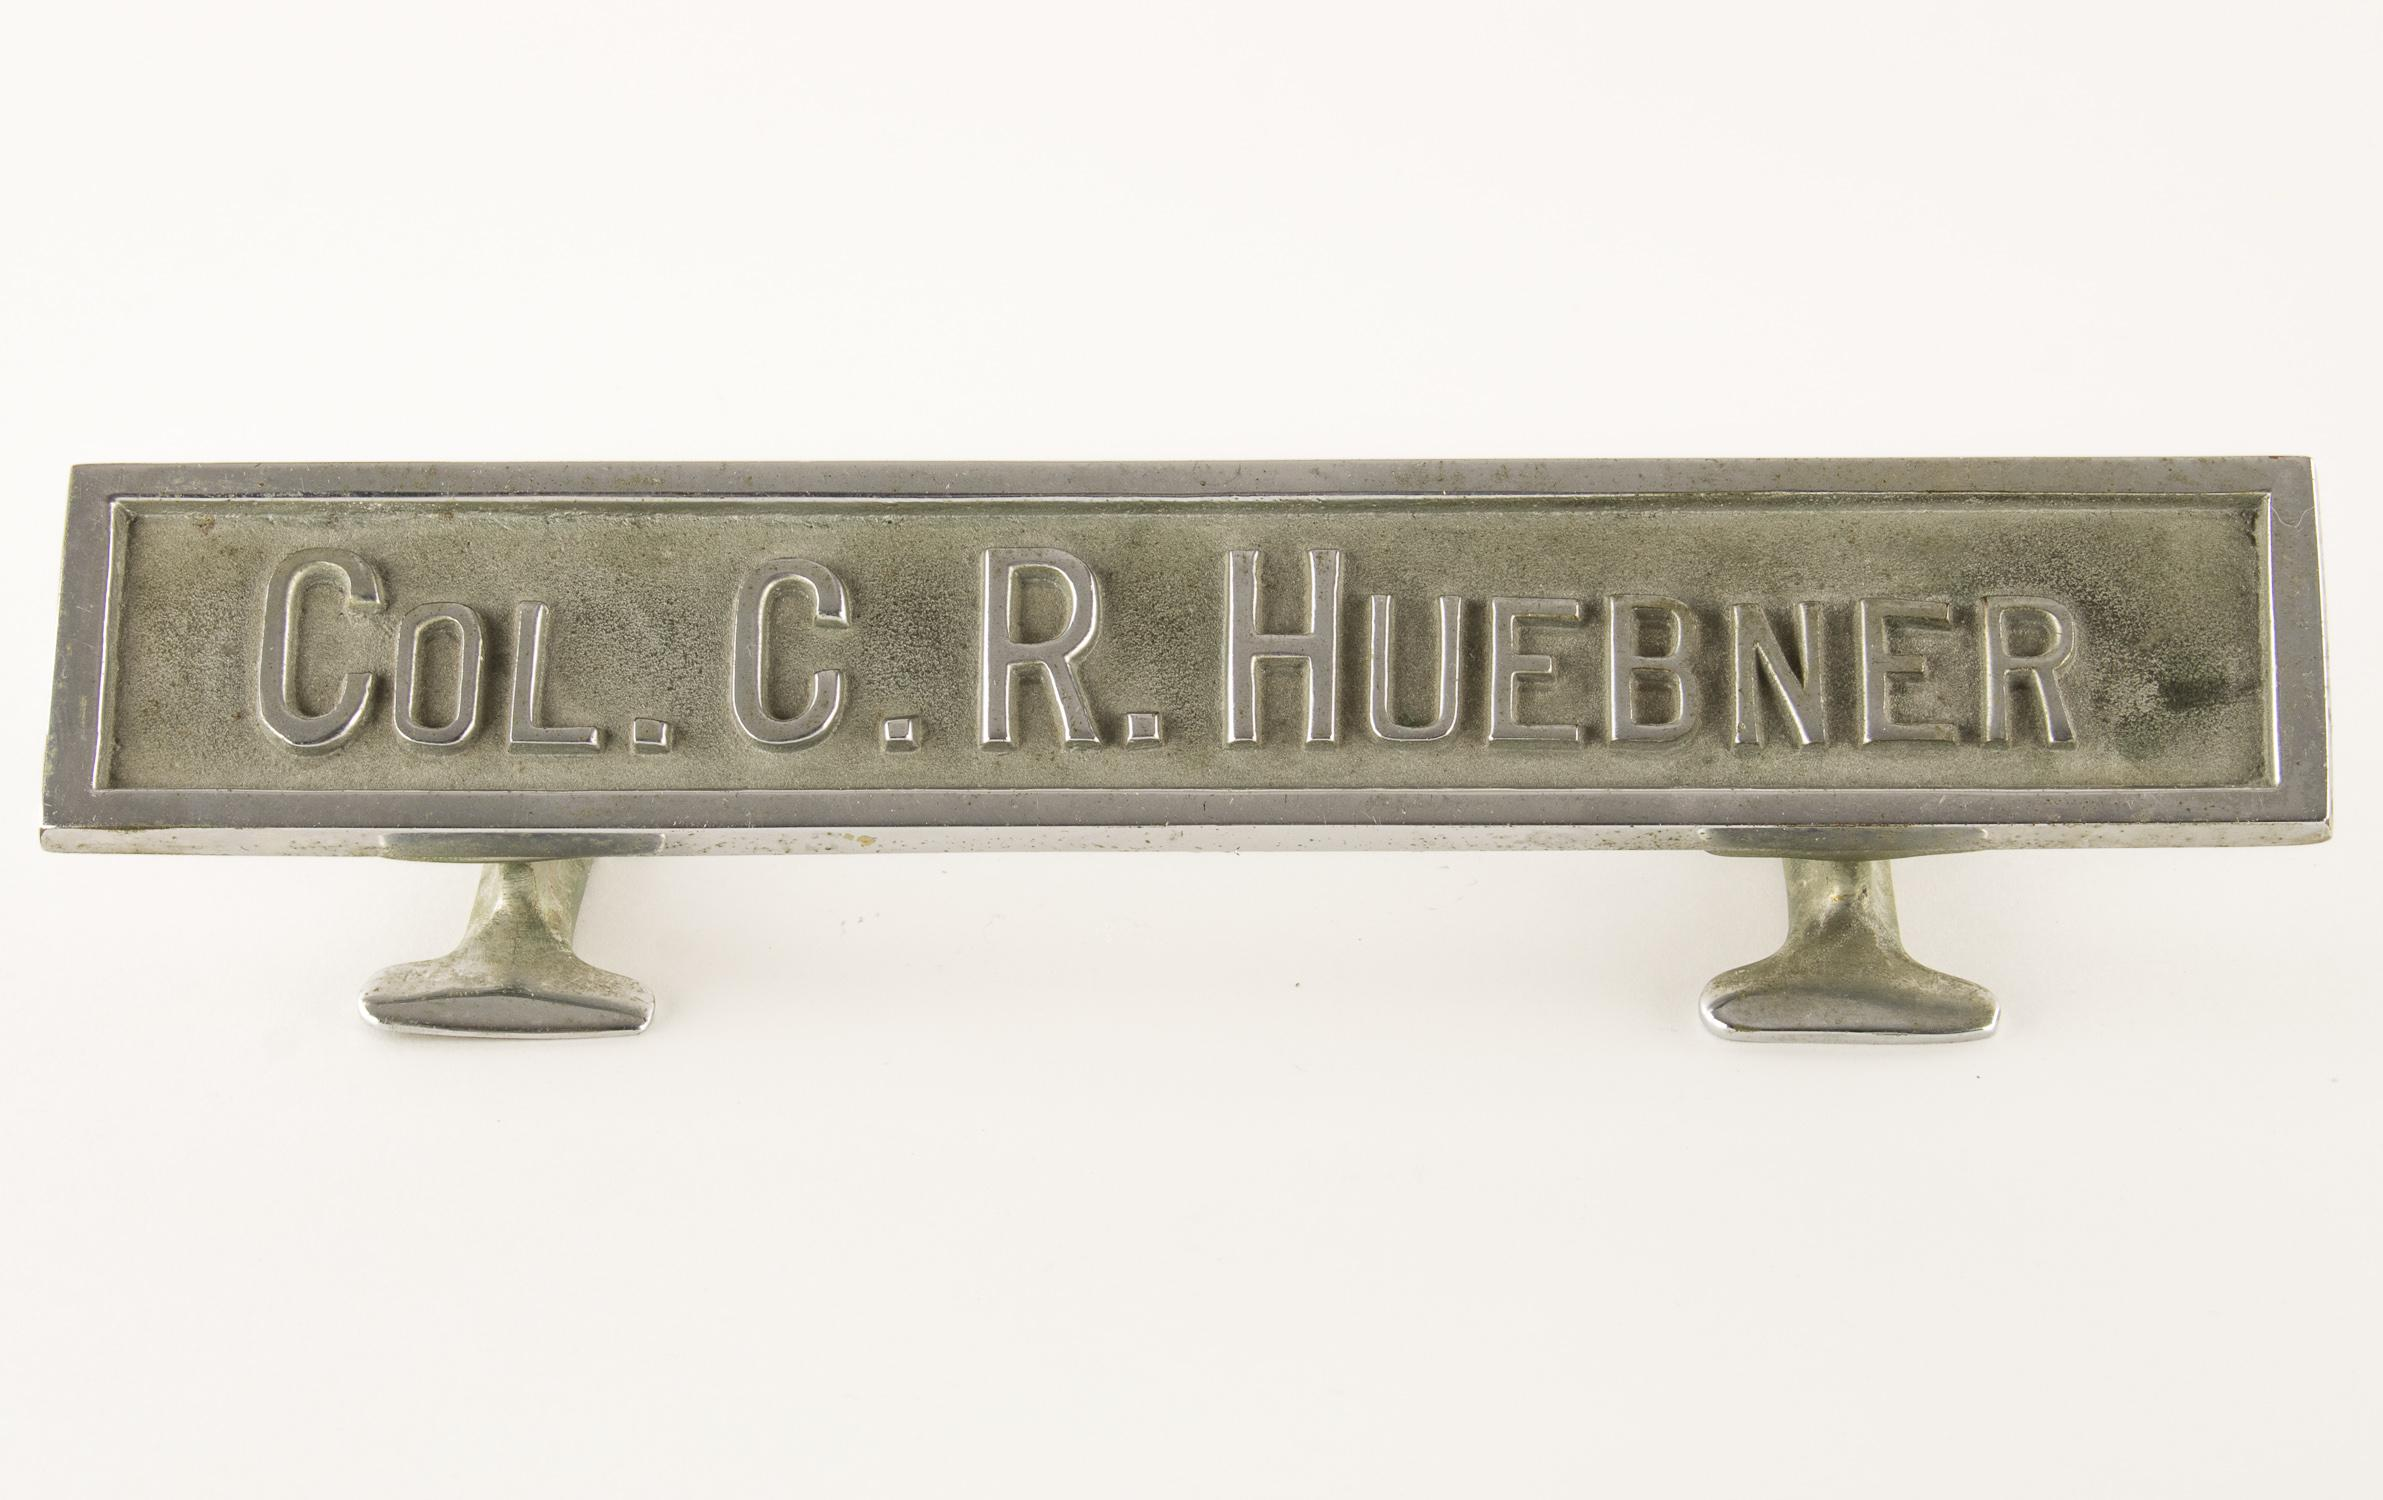 GEN. CLARENCE R. HUEBNER'S WARTIME DESK NAME PLATE